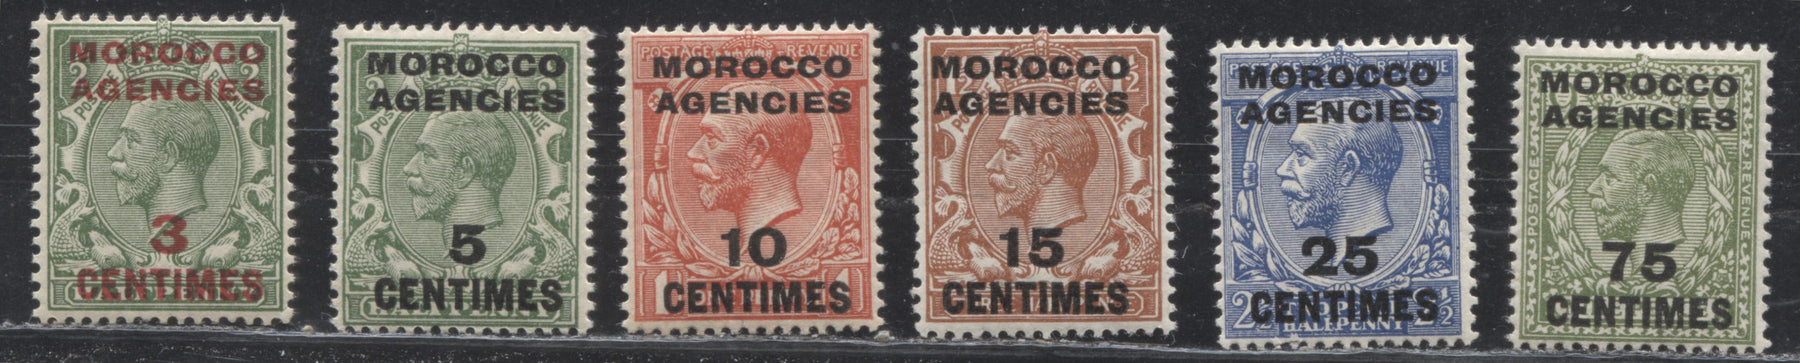 Morocco Agencies French Currency #401/408 (SG#191/198) 1913-1924 King George V Heads, Watermarked Royal Cypher, Overprinted and Surcharged, Six Fine and VF NH Mint Stamps